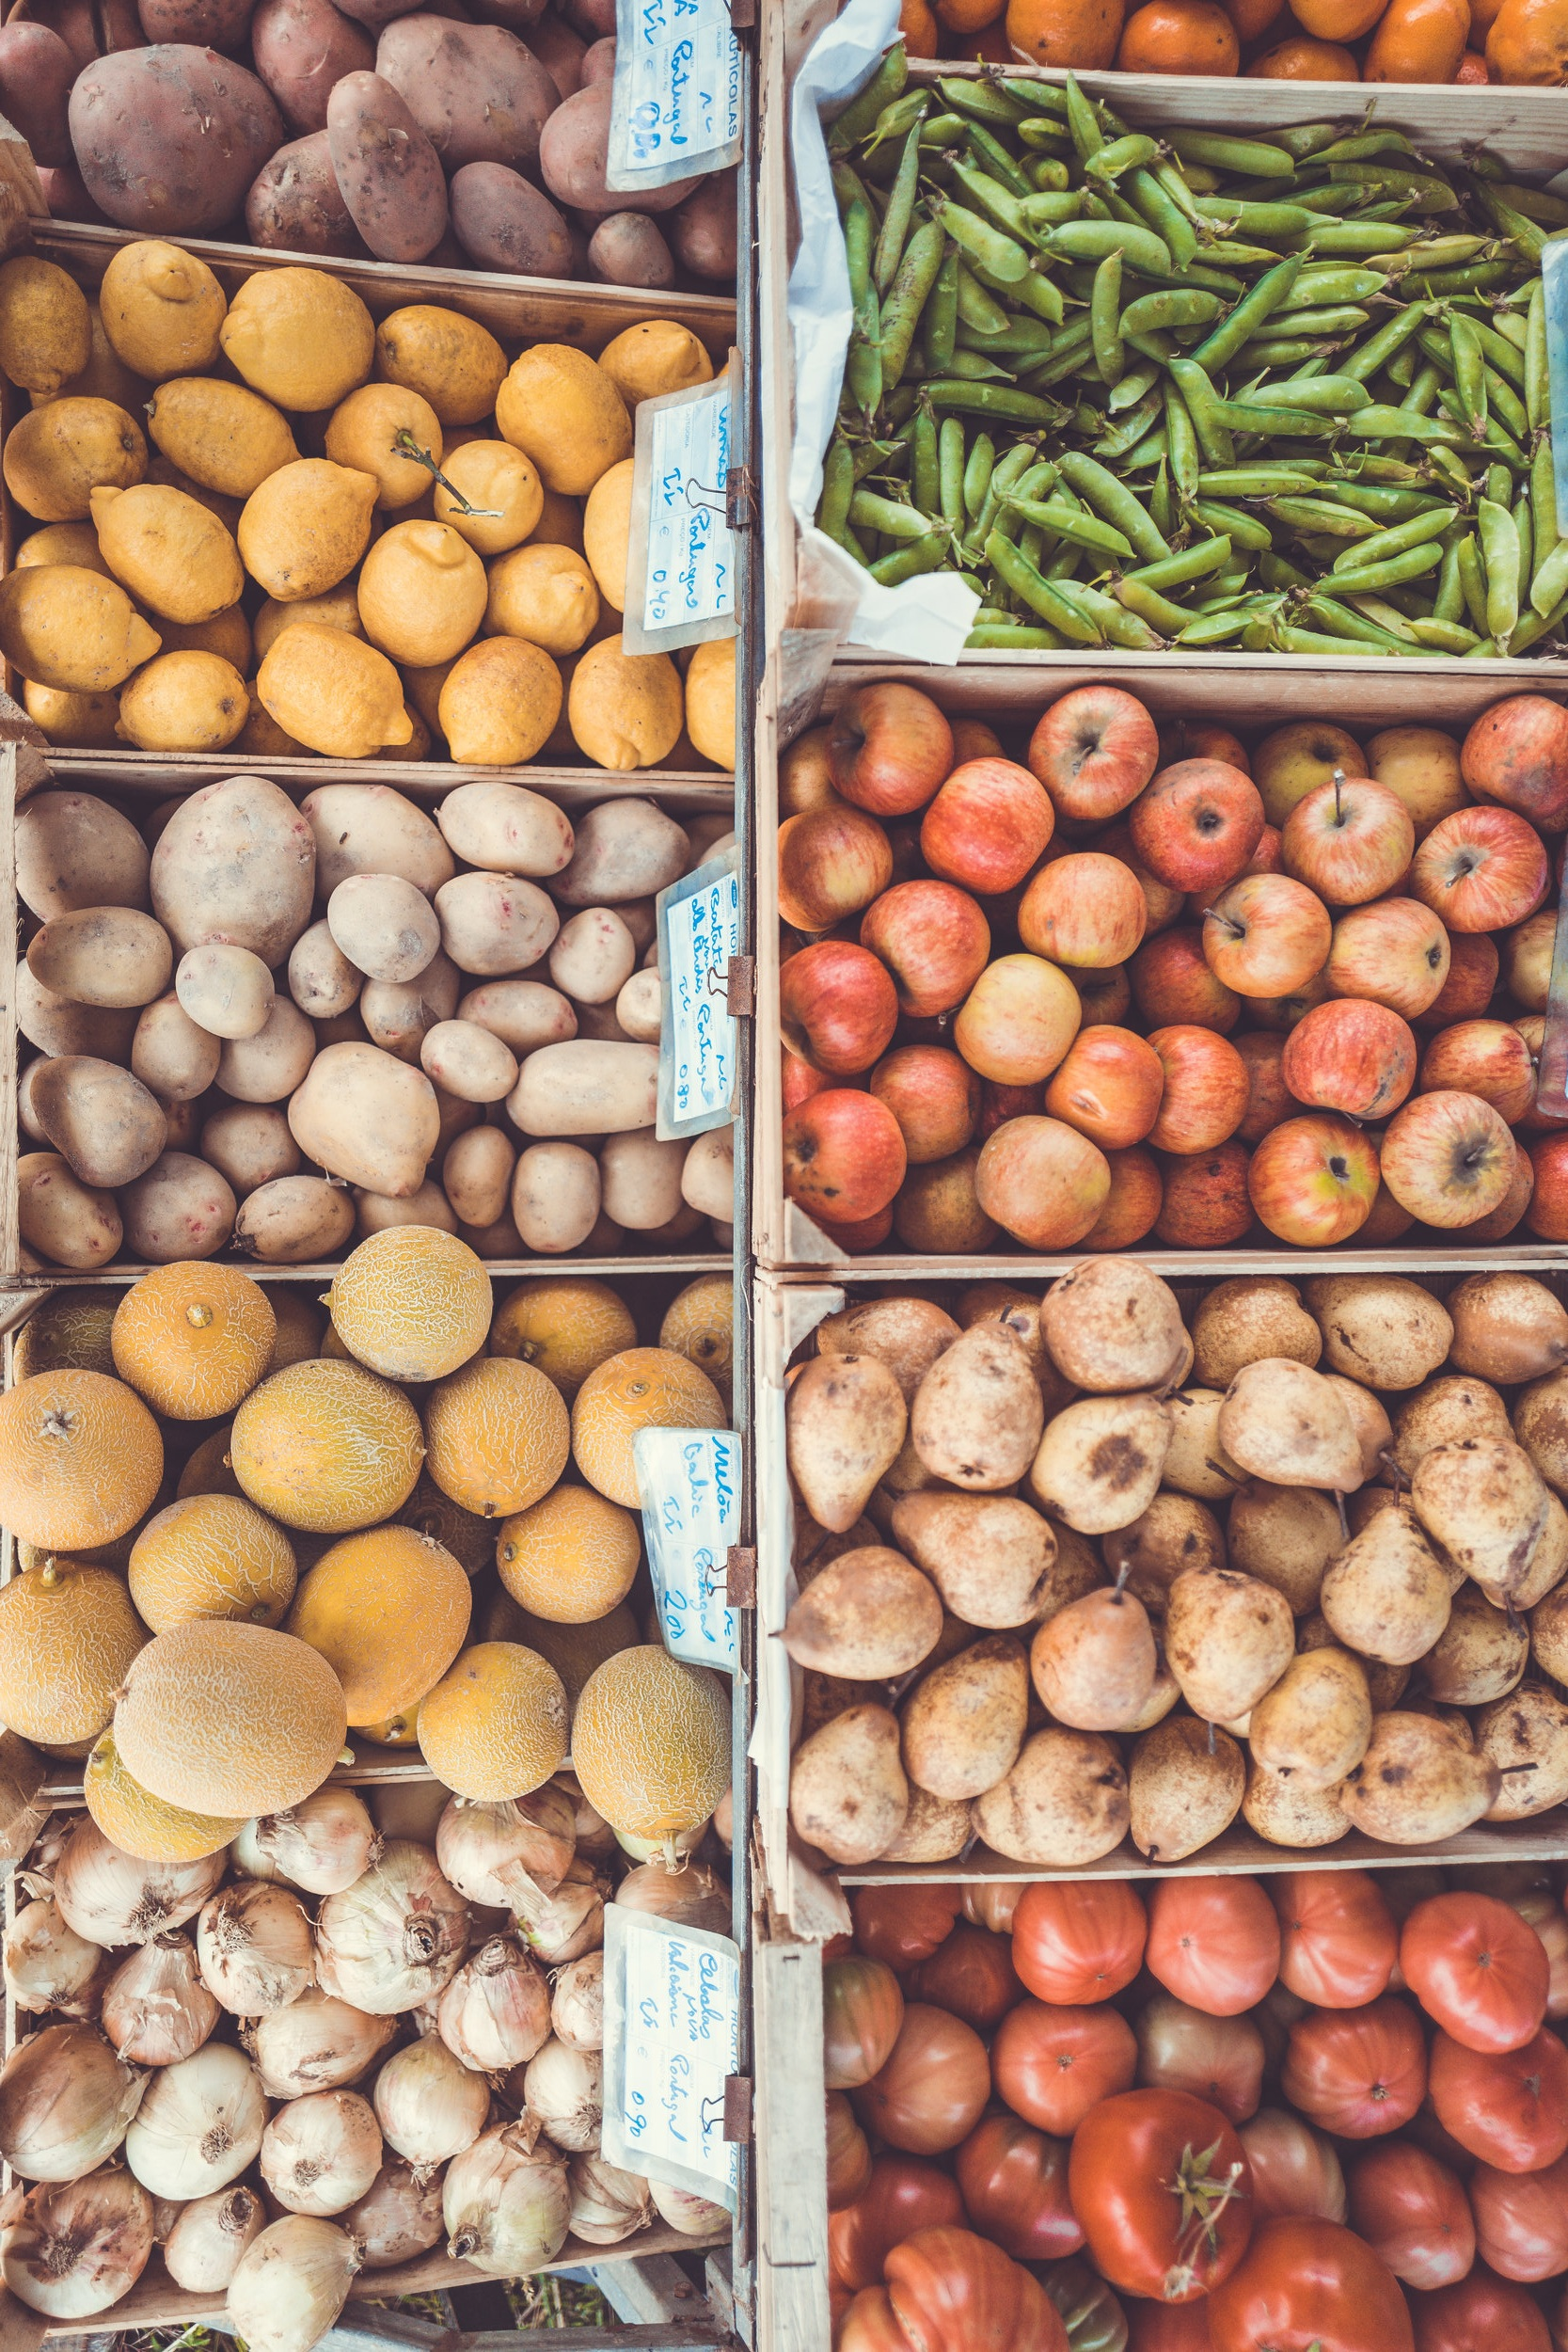 M&S to start selling loose fruit and veg in shift away from plastic -